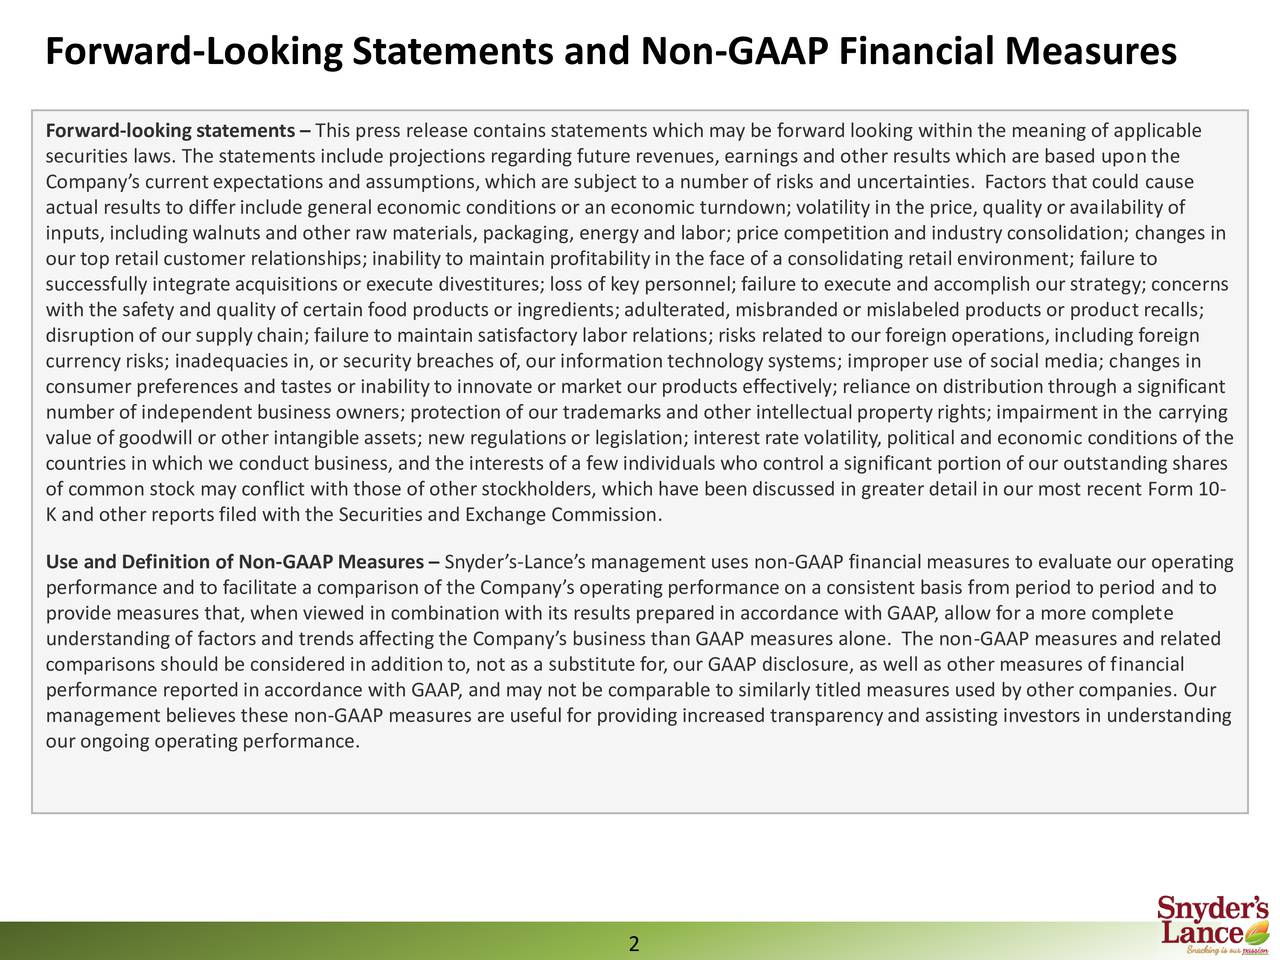 Forward-looking statements  This press release contains statements which may be forward looking within the meaning of applicable securities laws. The statements include projections regardingfuture revenues, earnings and other results which are based upon the Companys current expectations and assumptions, which are subject to a number of risks and uncertainties. Factors that could cause actual results to differinclude general economic conditions or an economic turndown; volatility in the price, qualityor availability of inputs, includingwalnuts and other raw materials, packaging, energy and labor; price competition and industryconsolidation; changes in our top retail customer relationships; inabilityto maintain profitabilityin the face of a consolidating retail environment; failure to successfully integrate acquisitions or execute divestitures; loss of key personnel; failure to execute and accomplish our strategy; concerns with the safety and qualityof certain food products or ingredients; adulterated,misbrandedor mislabeled products or product recalls; disruptionof our supplychain; failure to maintain satisfactory labor relations; risks related to our foreign operations,includingforeign currency risks; inadequacies in, or security breaches of, our information technology systems; improper use of social media; changes in consumer preferences and tastes or inabilityto innovate or market our products effectively; reliance on distributionthrough a significant number of independent business owners; protection of our trademarks and other intellectual propertyrights; impairment in the carrying value of goodwill or other intangible assets; new regulationsor legislation; interest rate volatility, political and economic conditions of the countries in which we conduct business, and the interests of a few individualswho control a significant portion of our outstandingshares of common stock may conflict with those of other stockholders, which have been discussed in greater detail